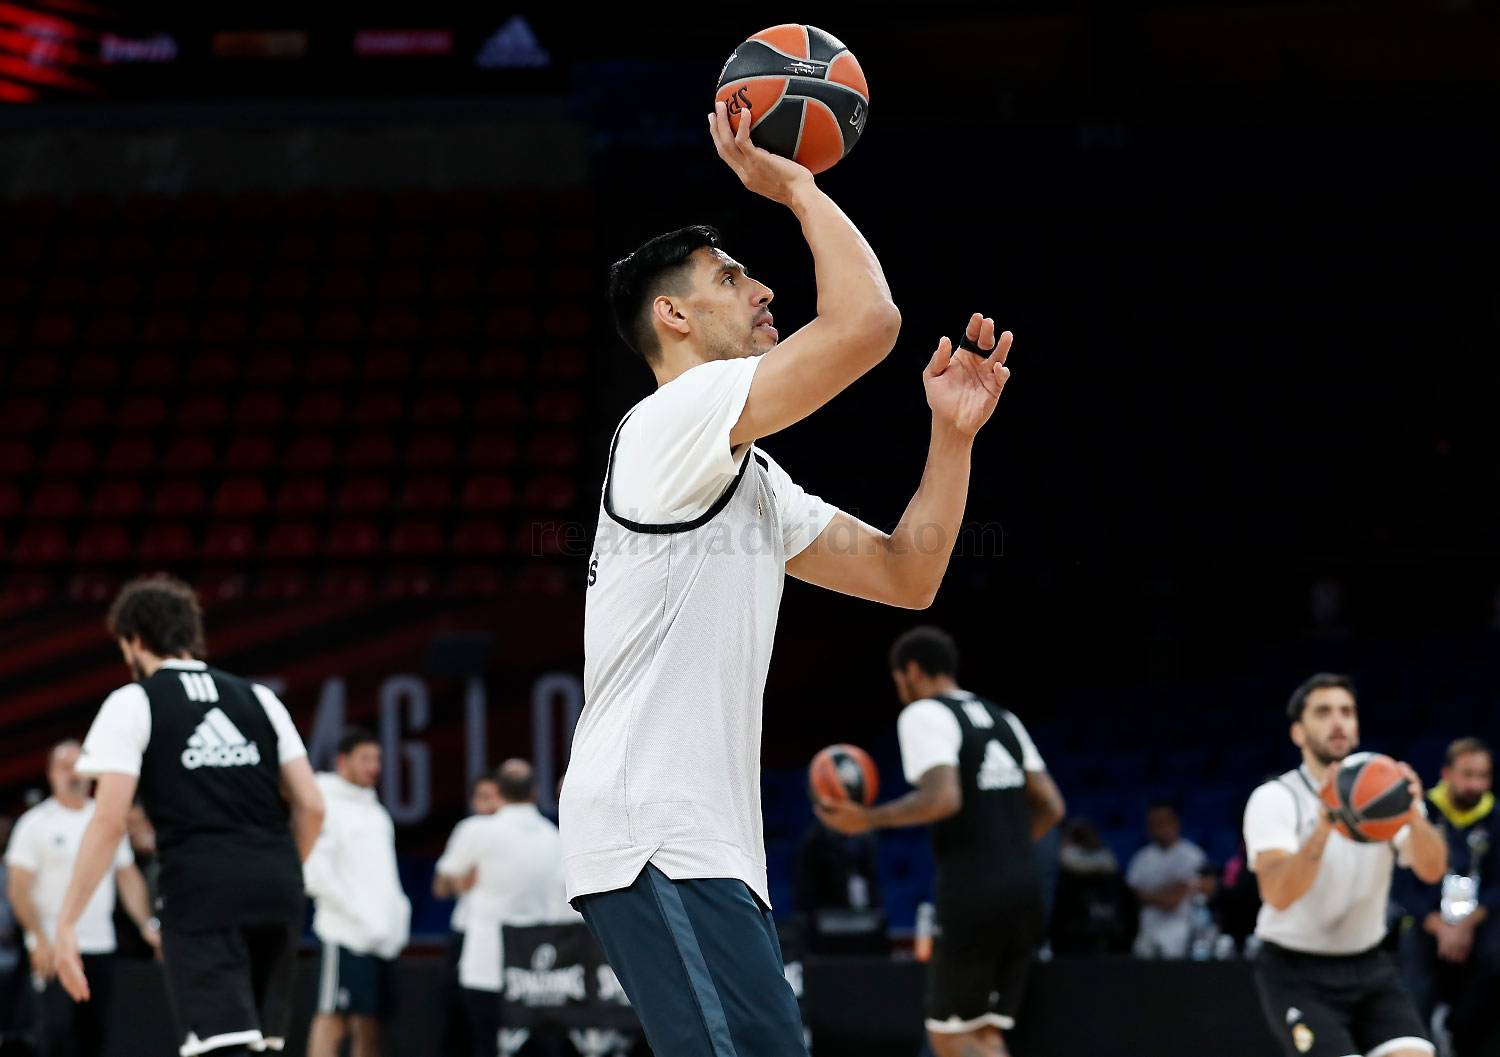 Real Madrid - Entrenamiento del Real Madrid de baloncesto en Vitoria - 18-05-2019